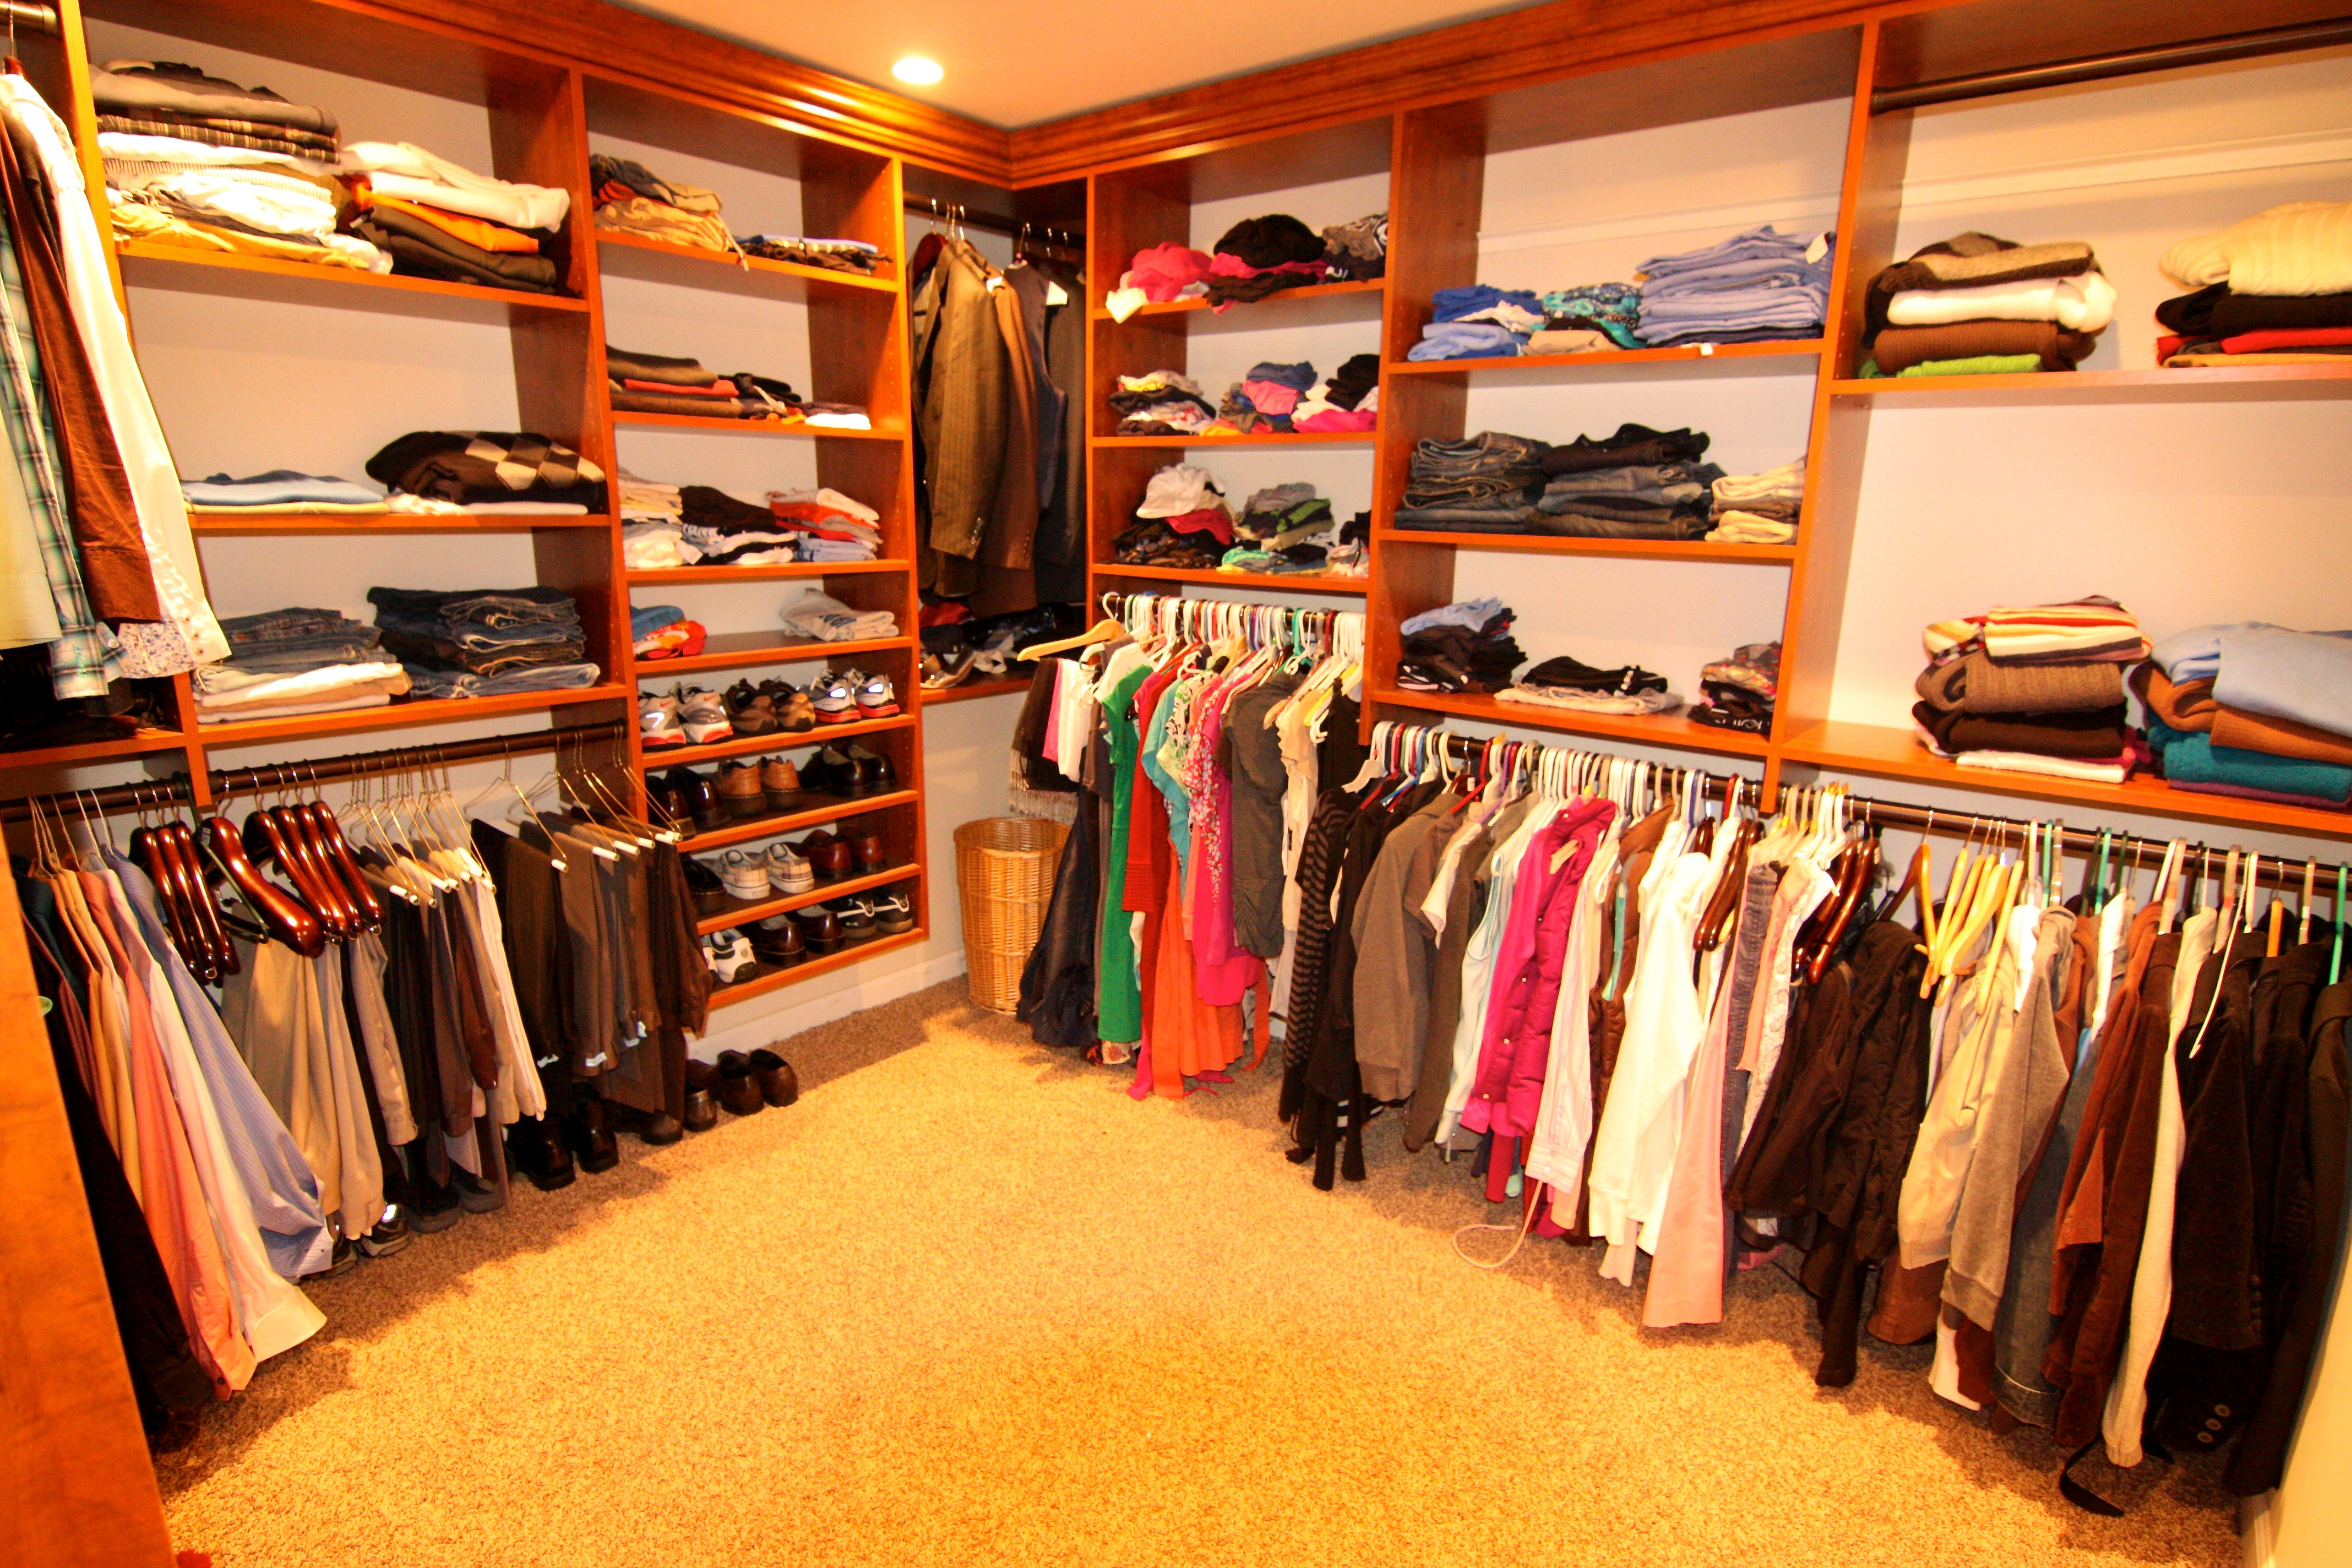 Walk In Closet Designs For Every Personality Type photo - 5